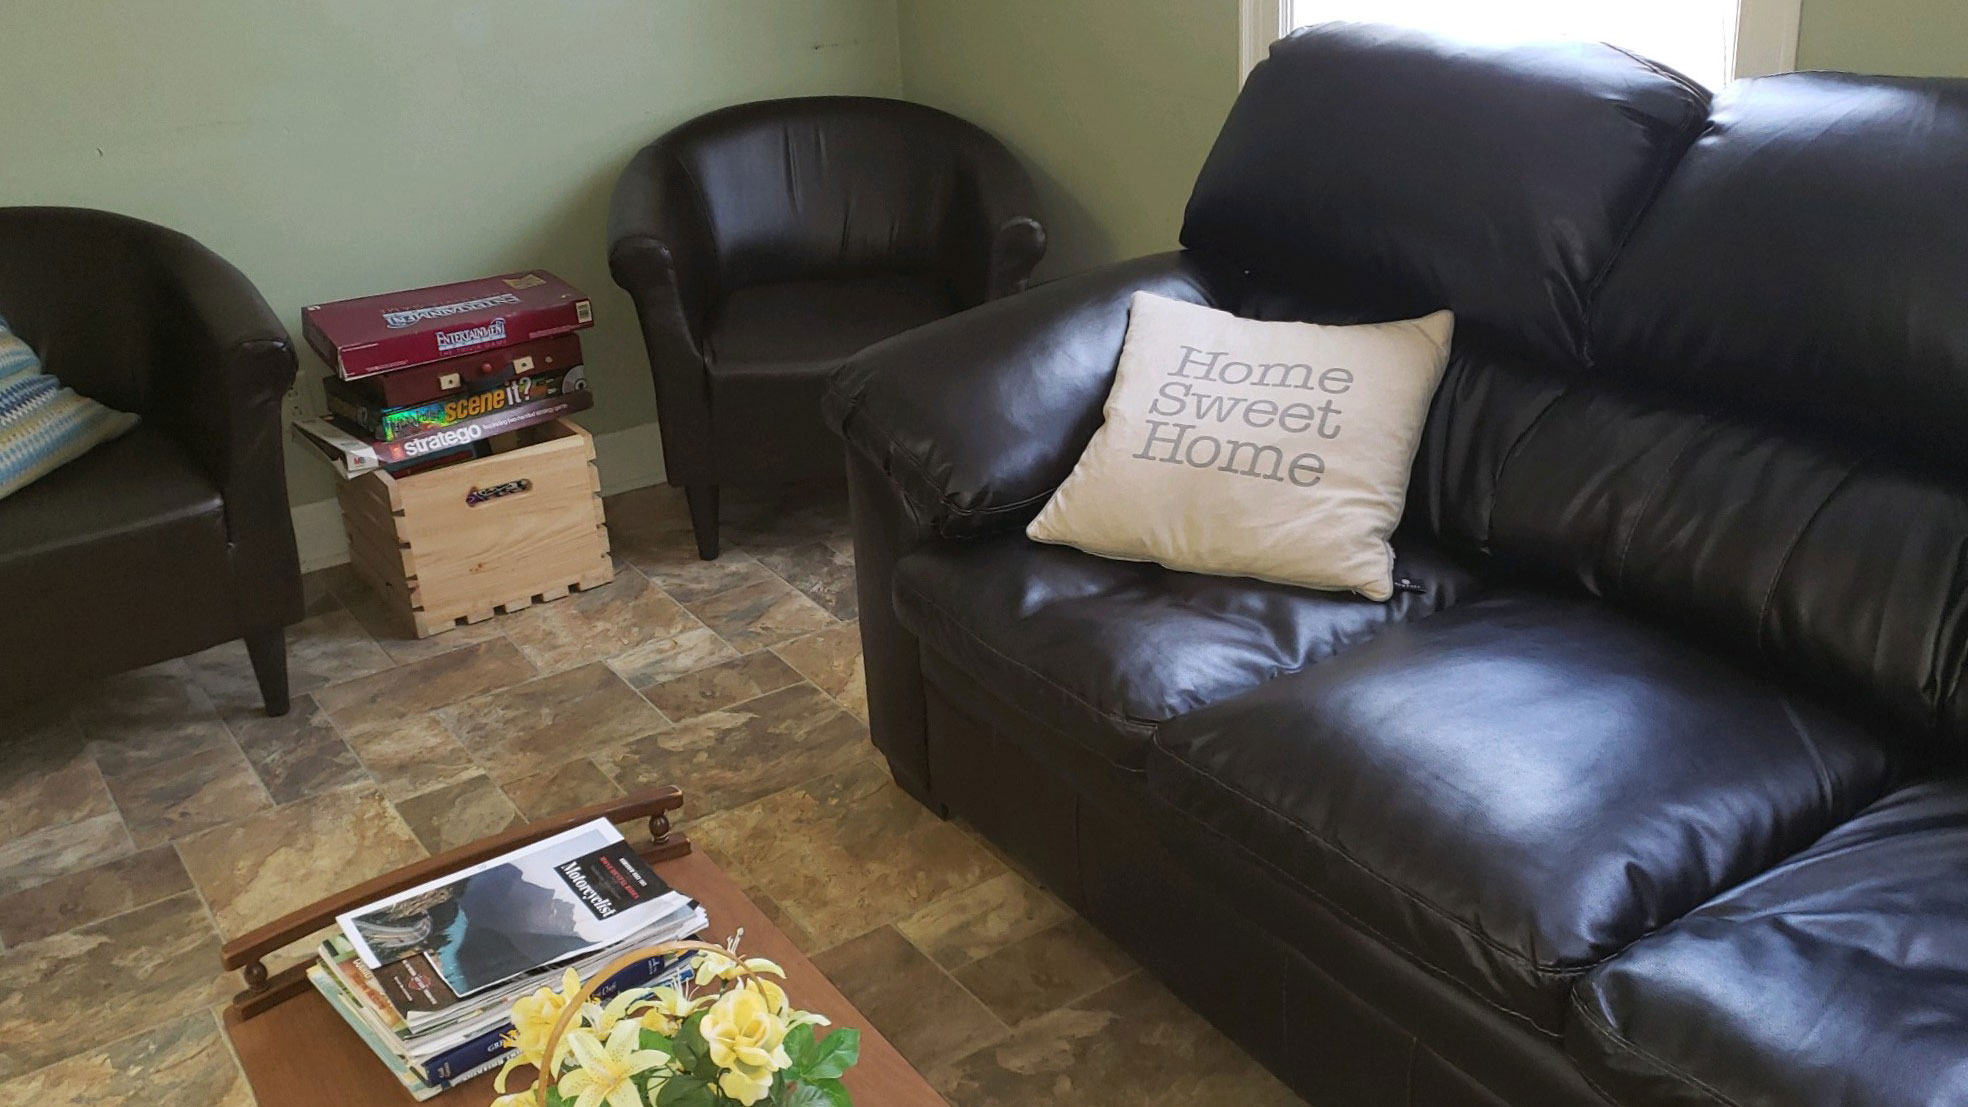 Shelter-new-couch-and-chairs-purchased-with-Parish-coin-box-collection-donations_1556819055811.jpg